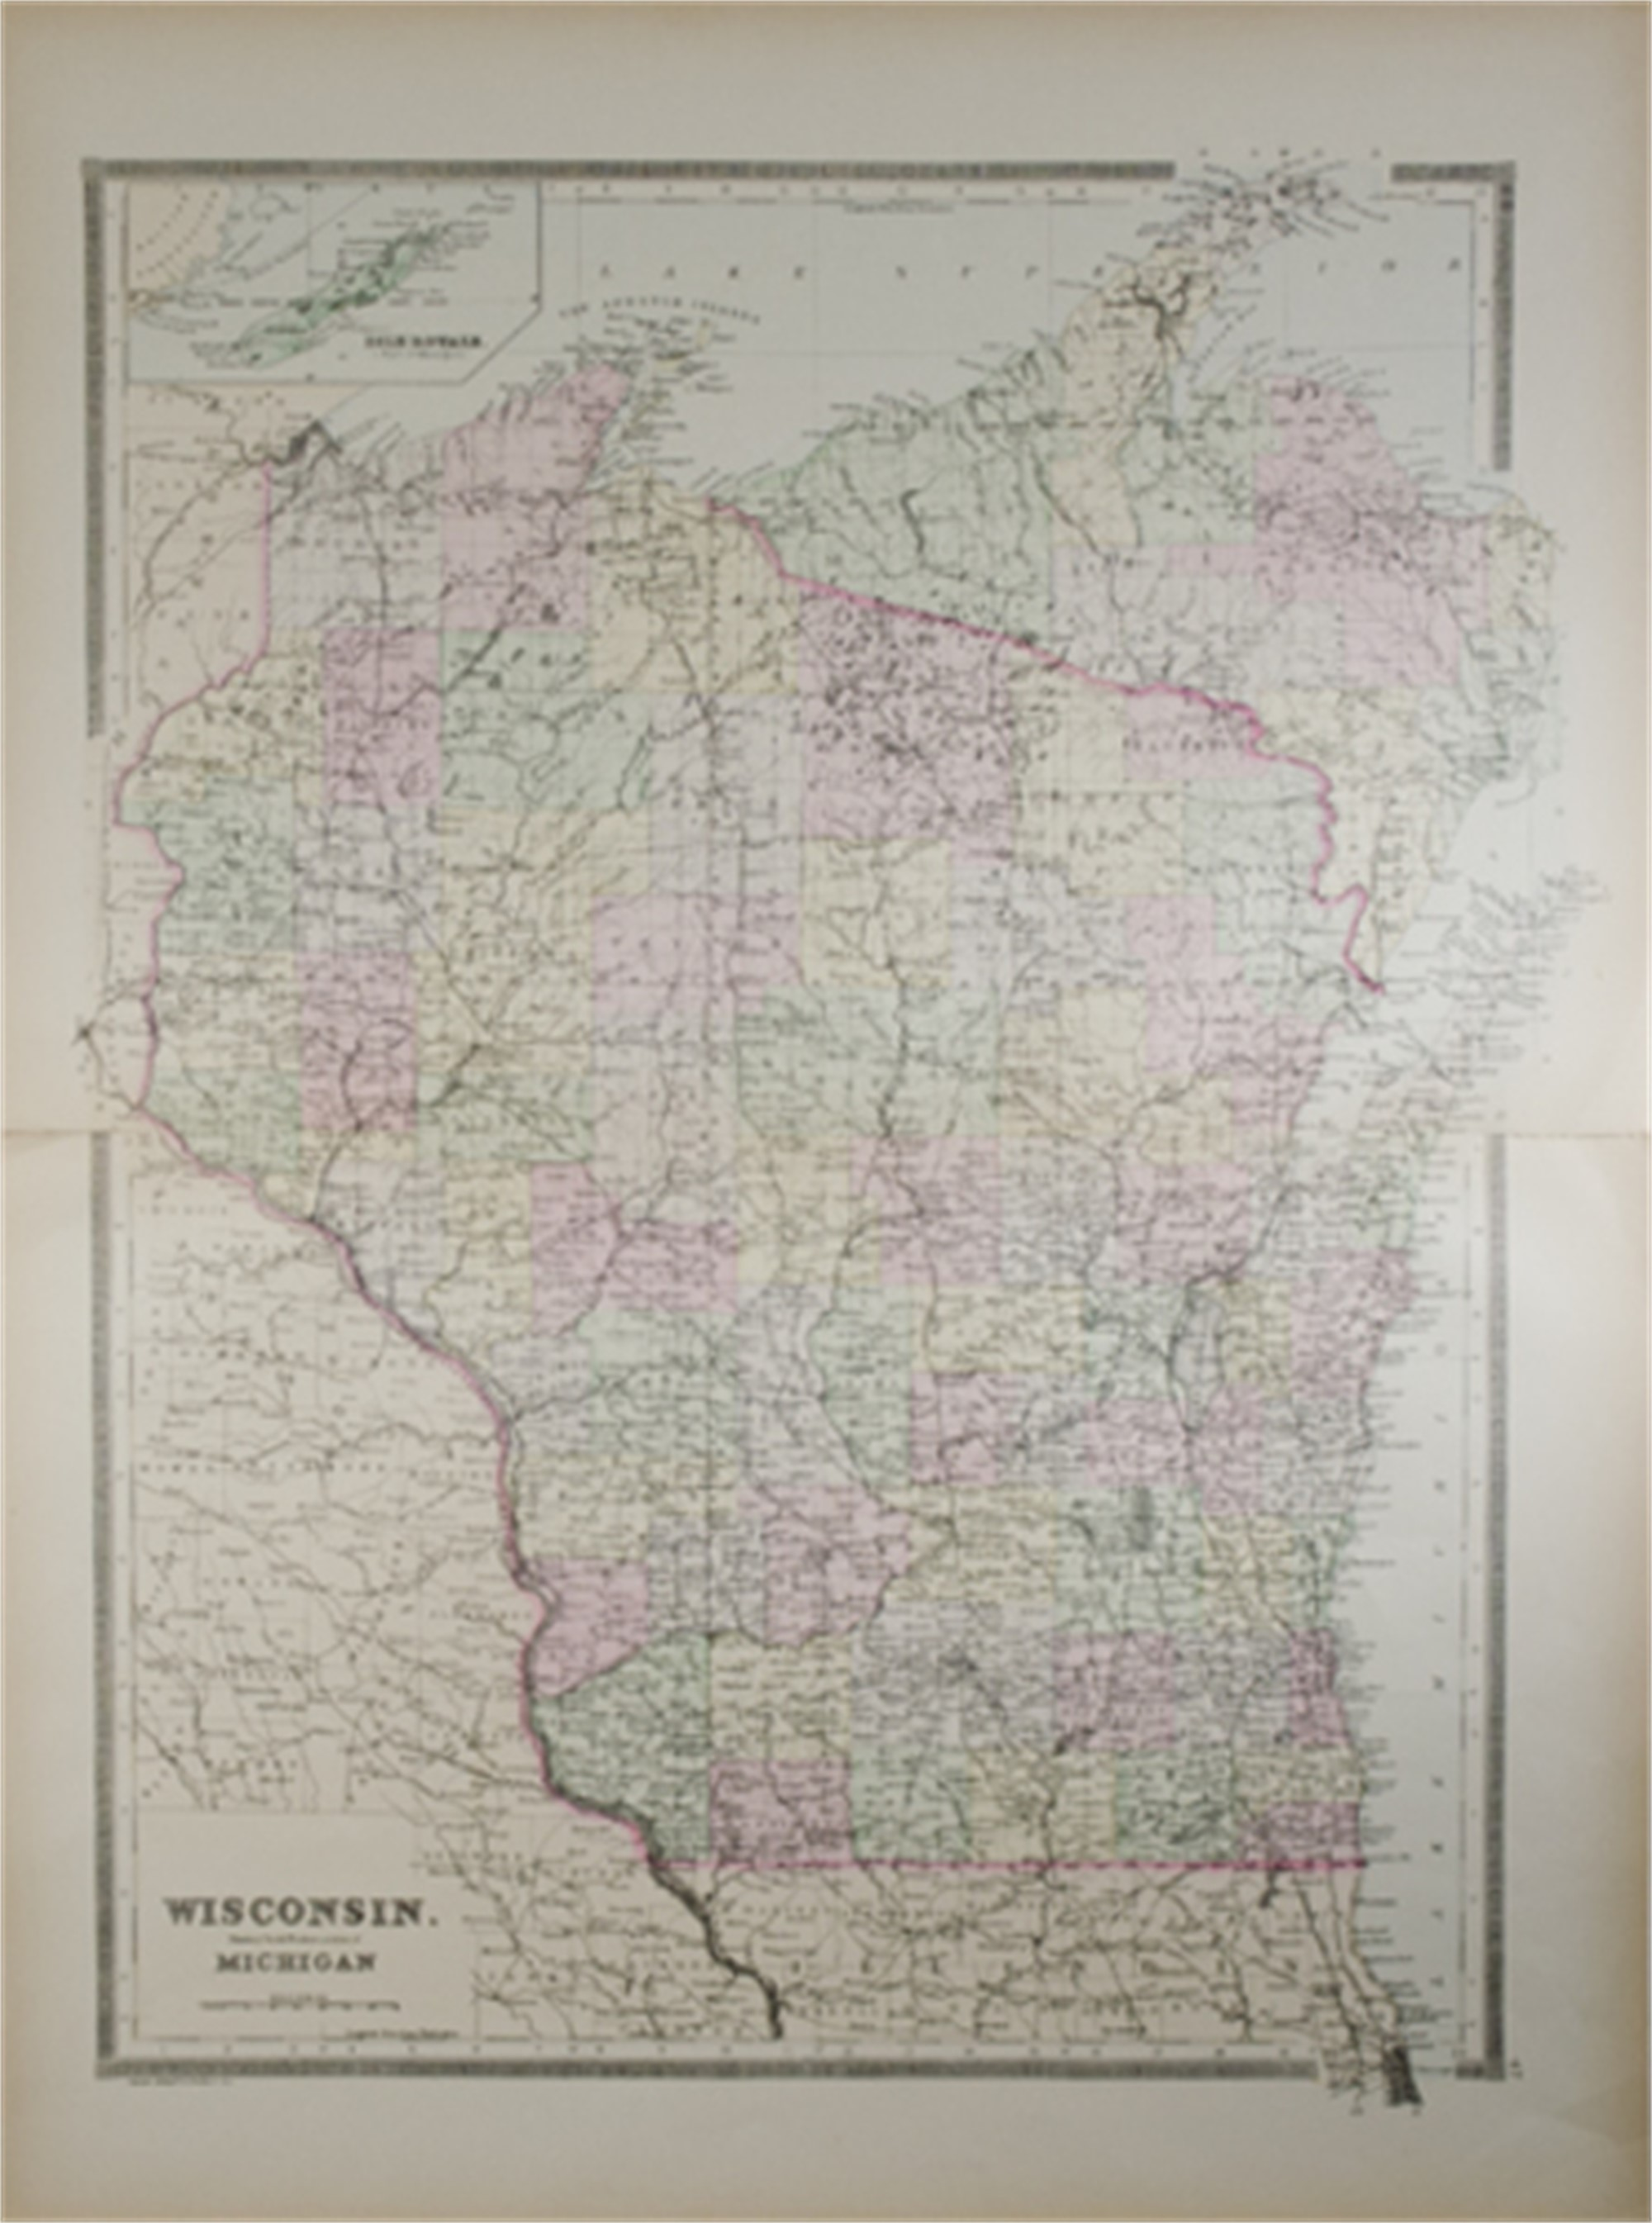 Wisconsin Map Showing Northwestern Portion of Michigan by William M. Bradley & Bros.